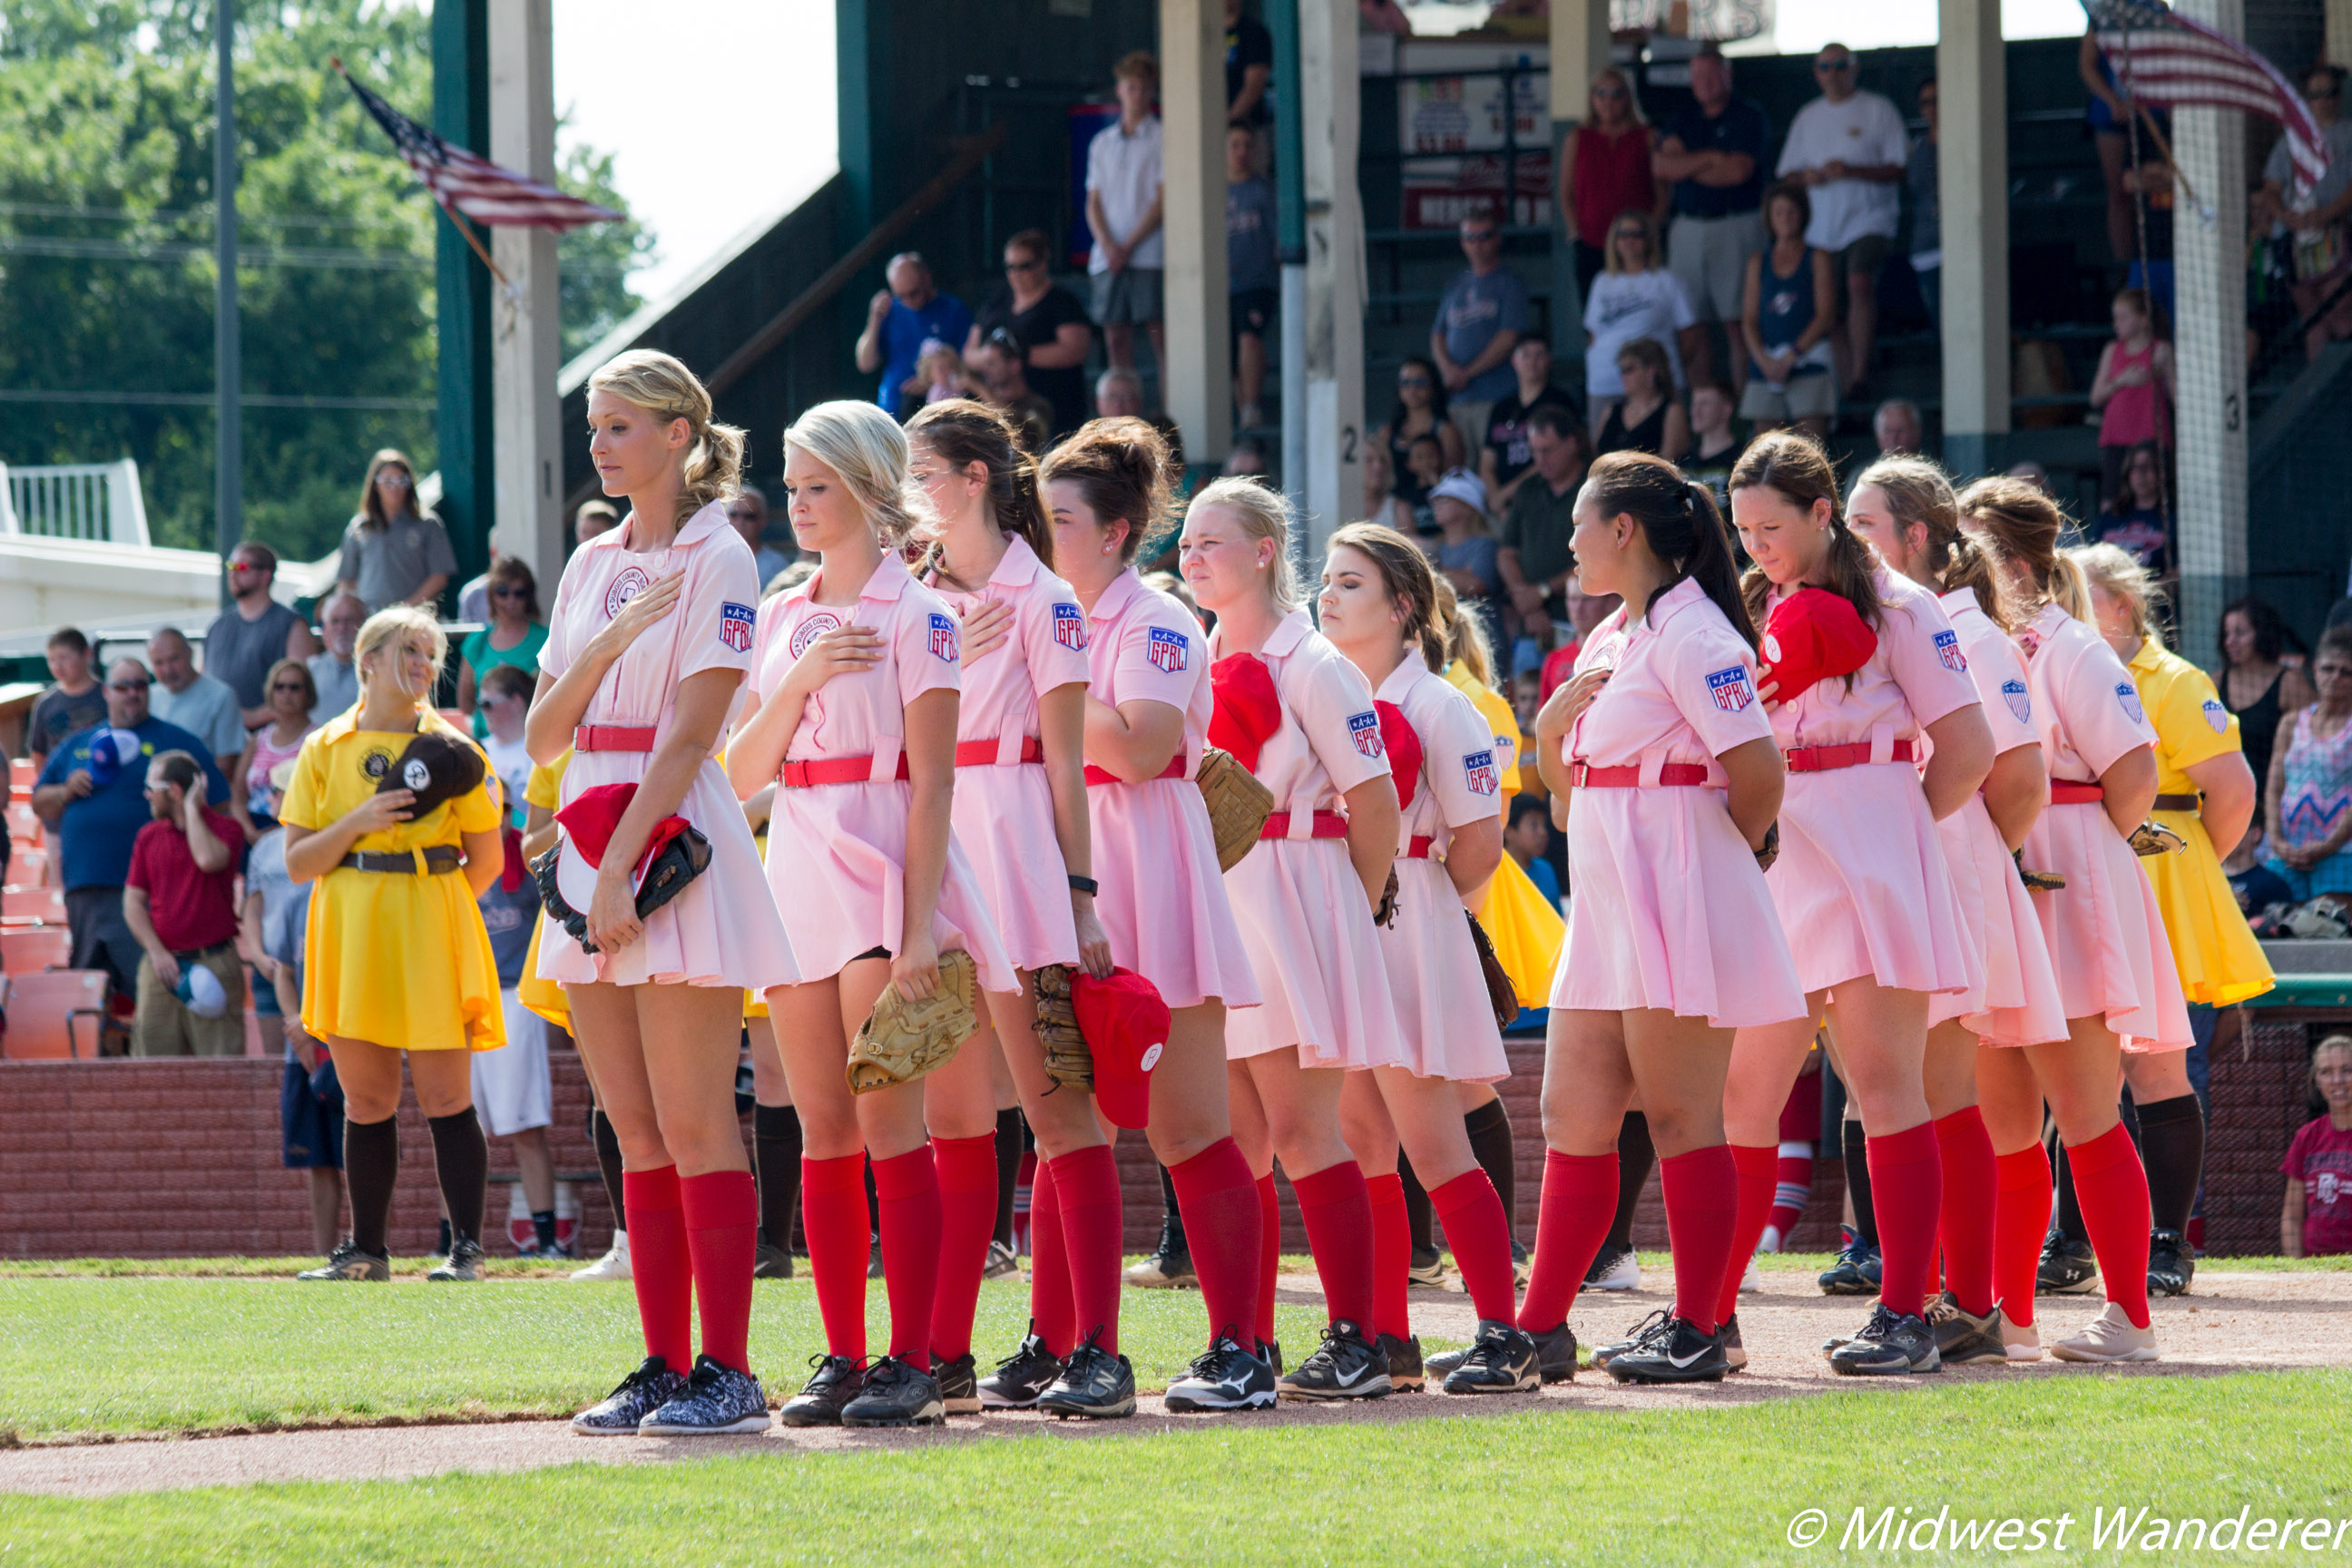 Rockford Peaches vs Racine Bells rematch